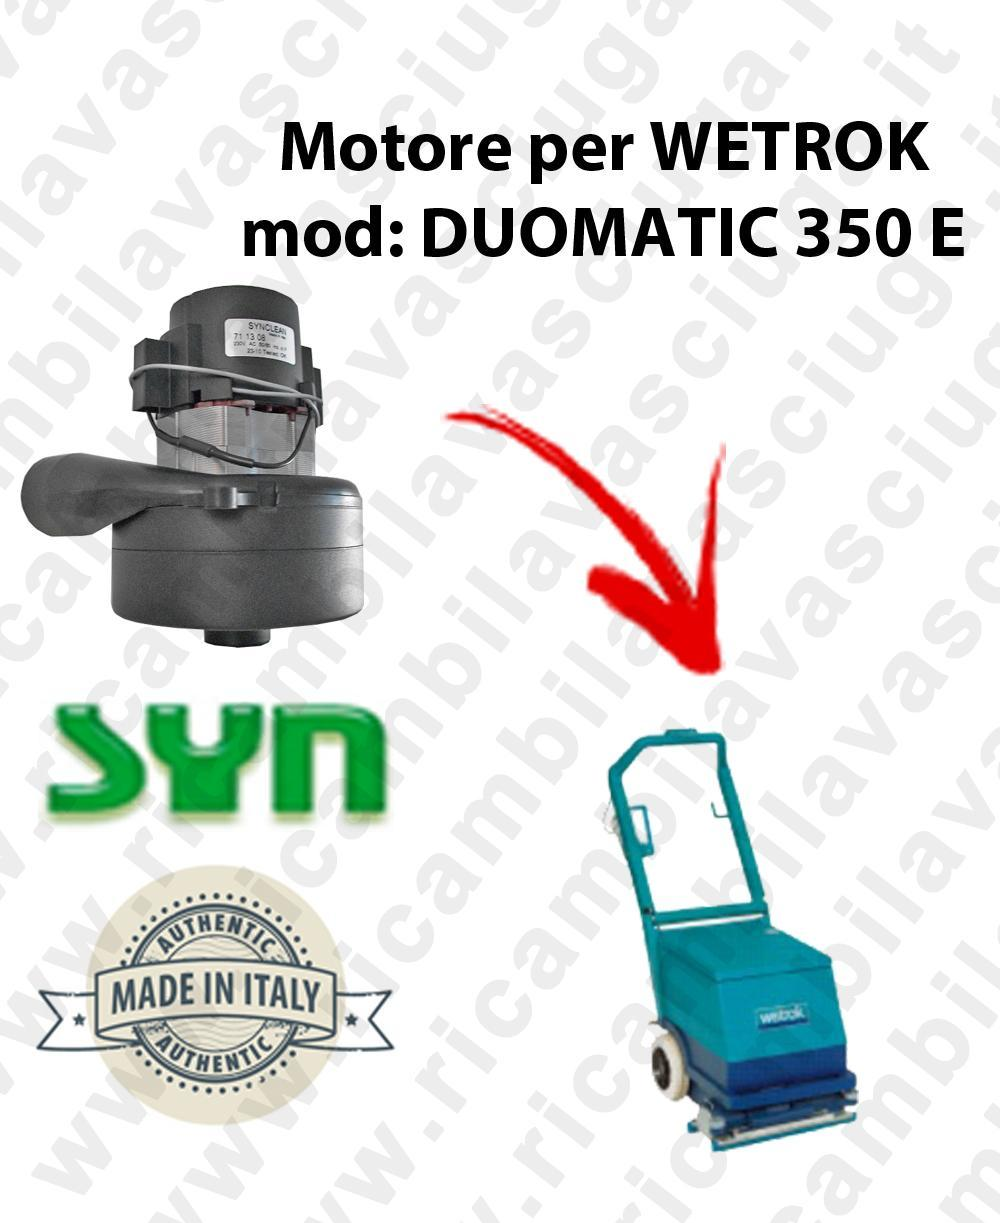 DUOMATIC 350 E SYNCLEAN vacuum motor for scrubber dryer WETROK